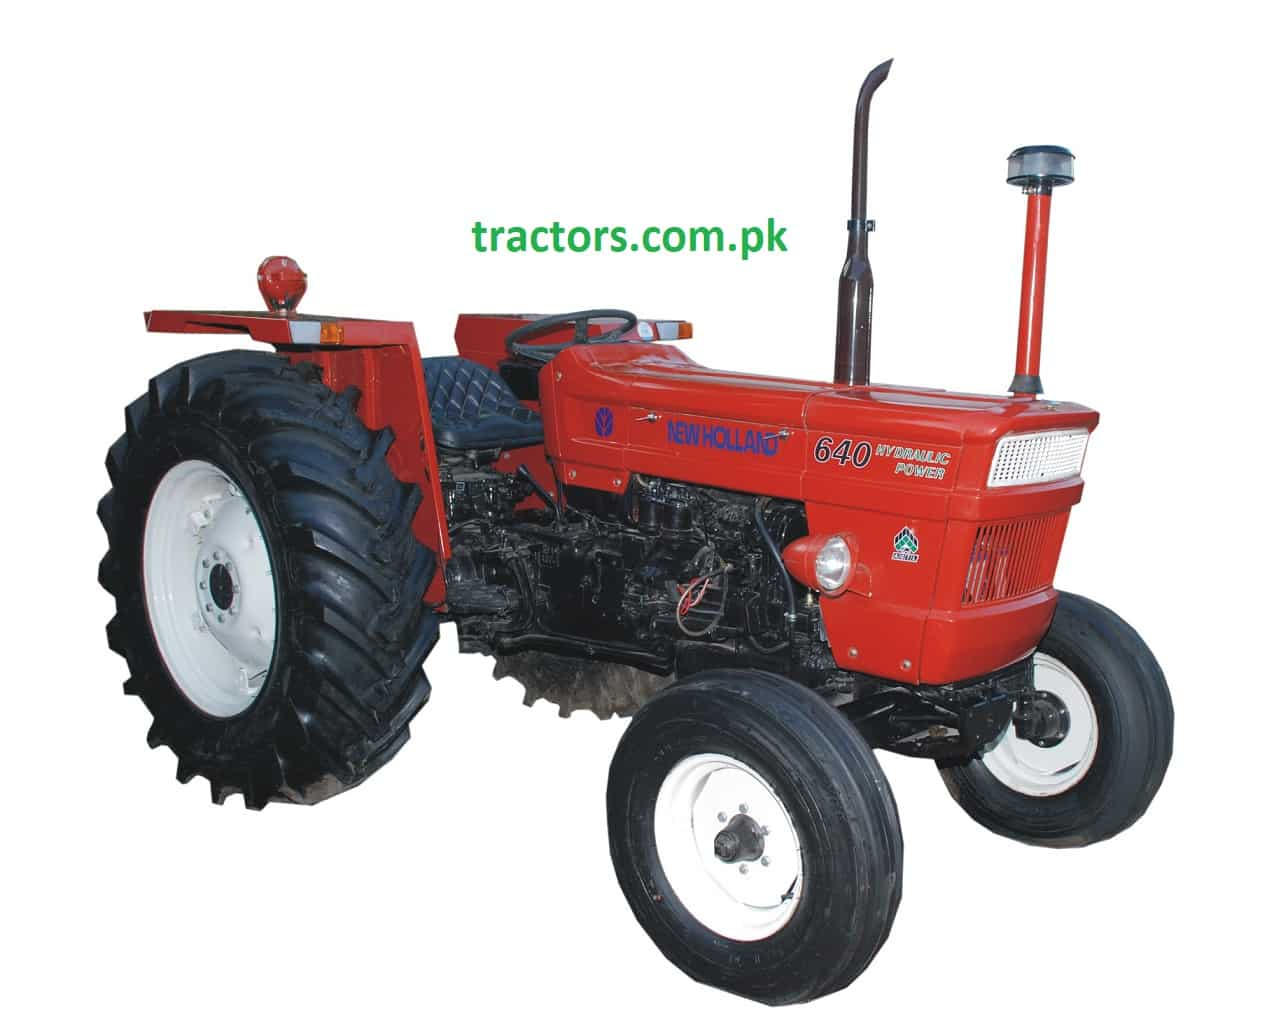 Fiat 640 Tractor Wiring Diagram Detailed Schematics Diagrams For Tractors Nh Dabung 85 Hp Price Specifications 2018 19 Model Agtl And Work At Its Field